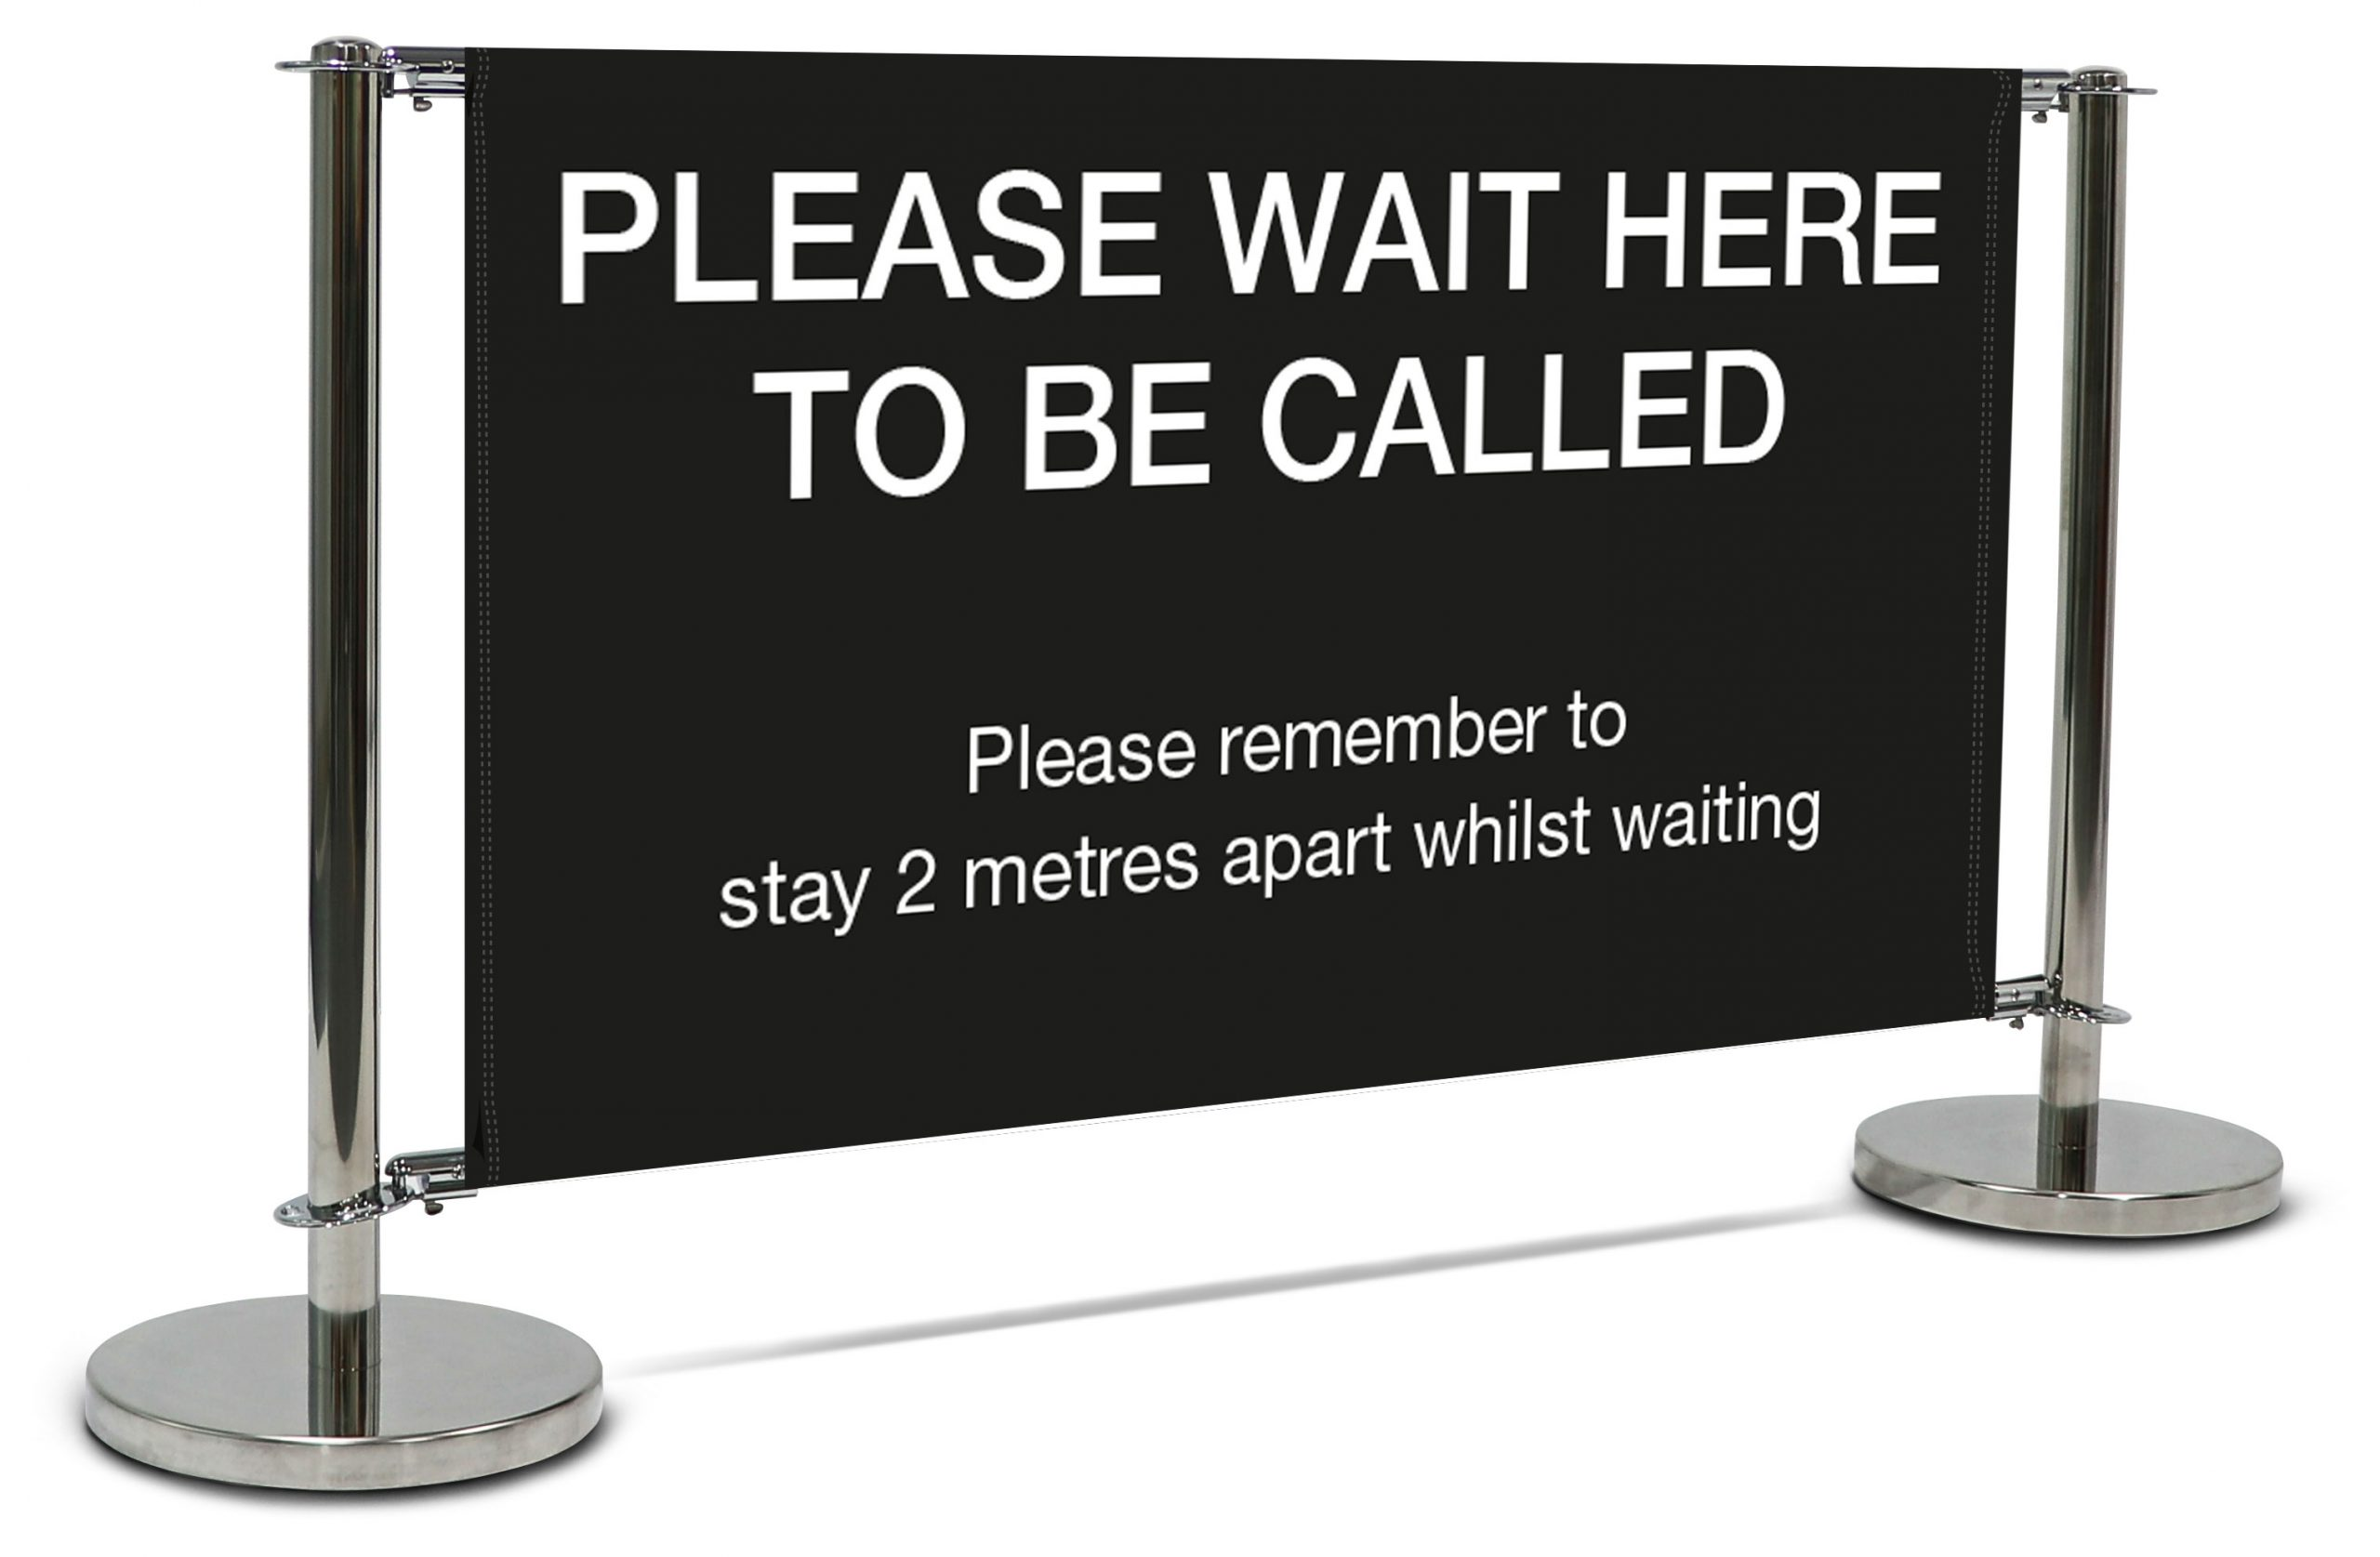 Deluxe queue system cafe barrier for schools and businesses